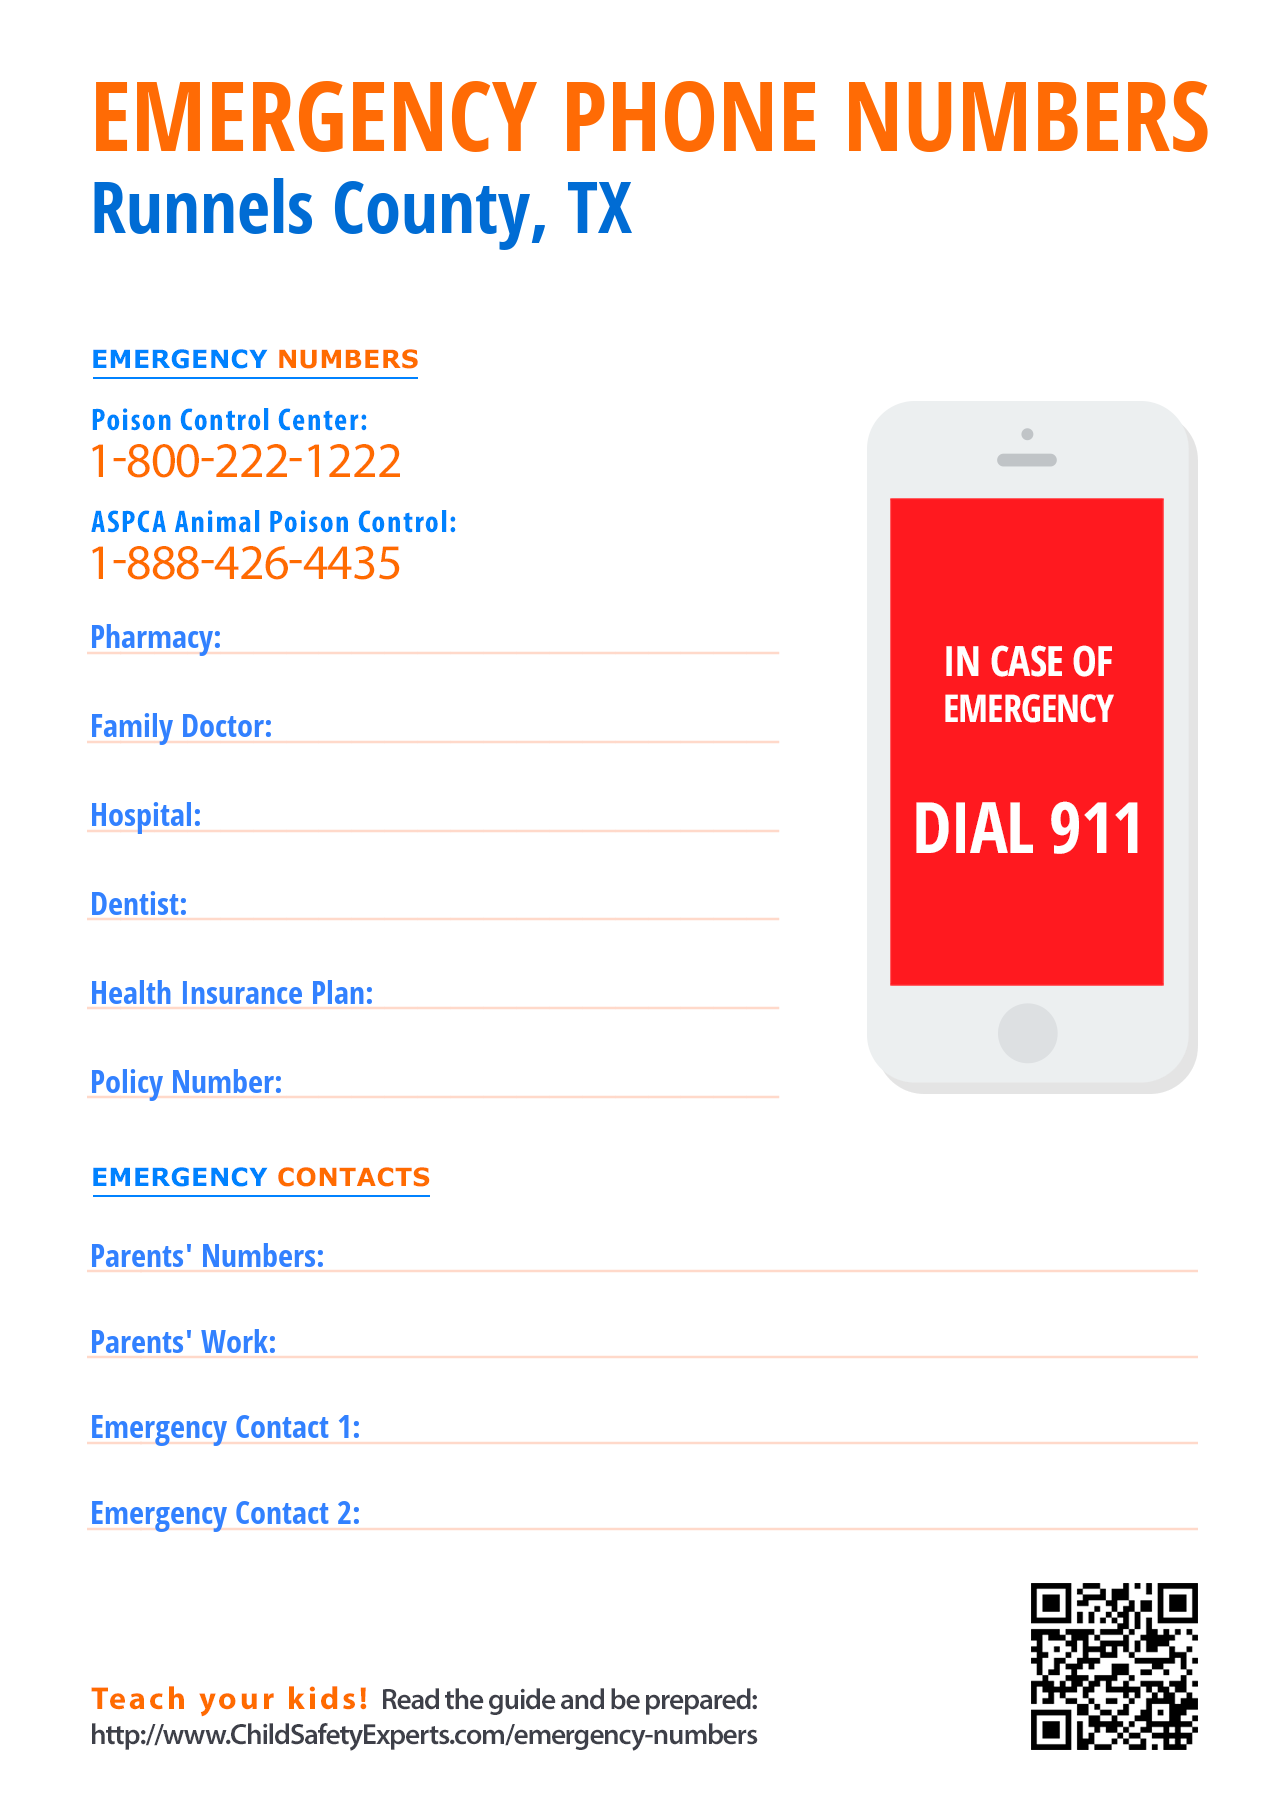 Important emergency phone numbers in Runnels County, Texas